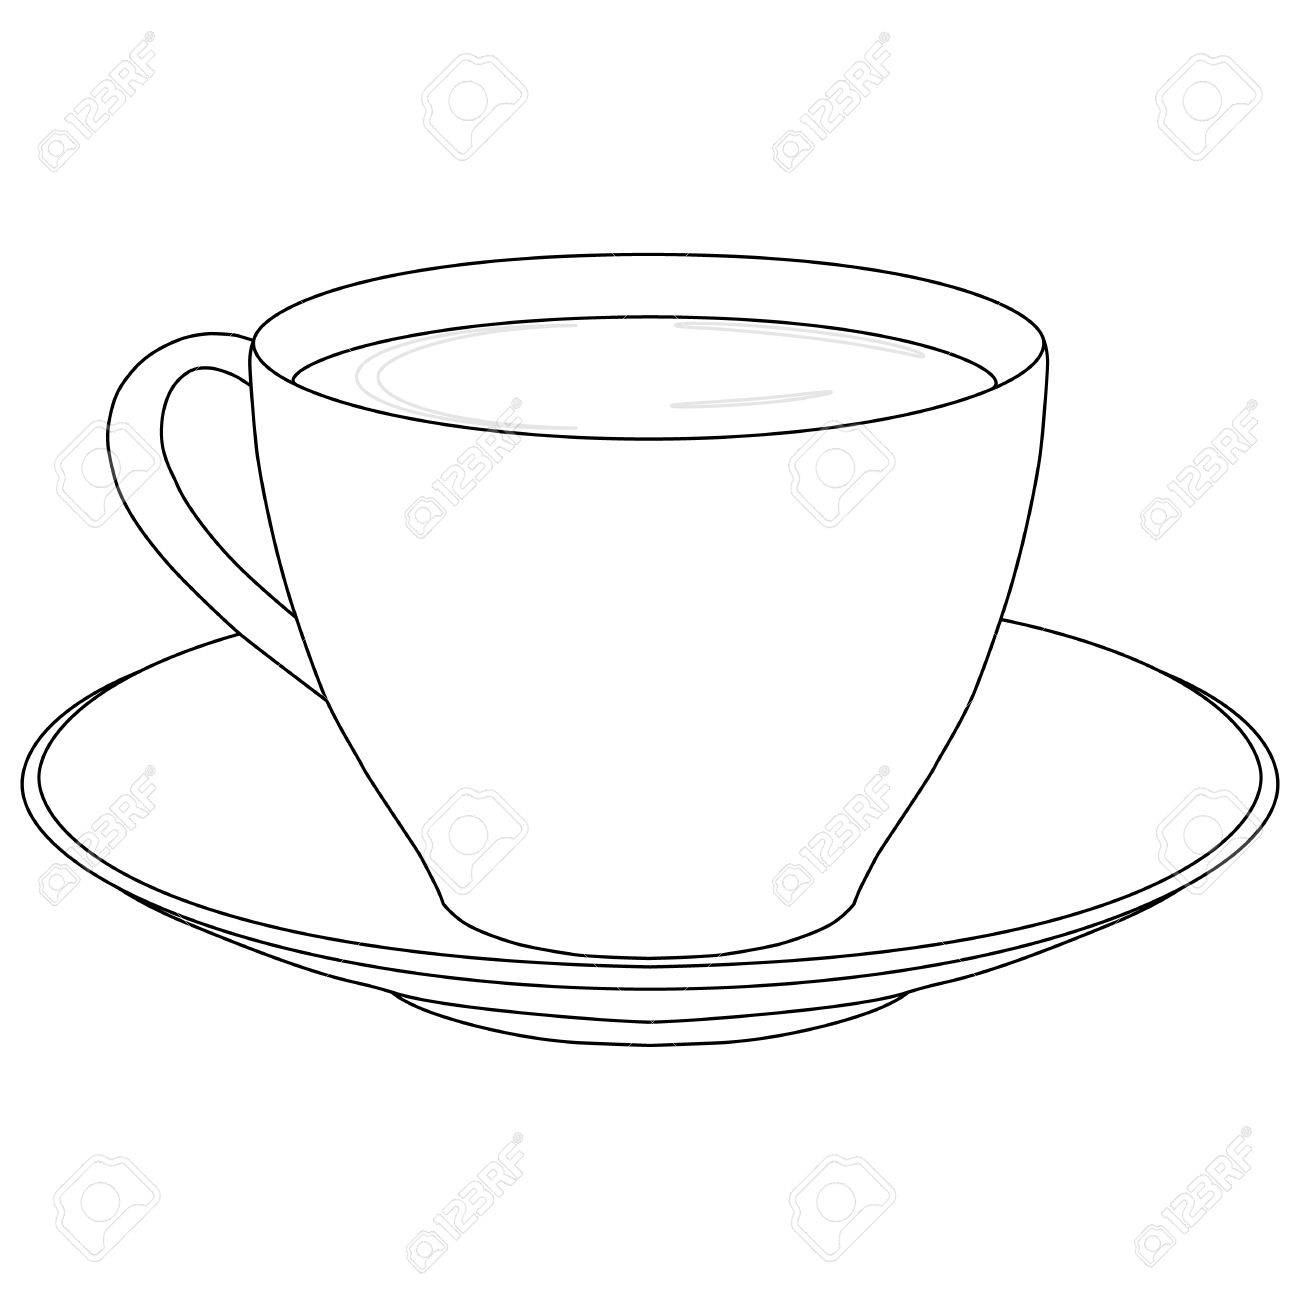 Cup Of Coffee With Saucer Outline Raster Illustration Stock Photo Picture And Royalty Free Image Image 69162766